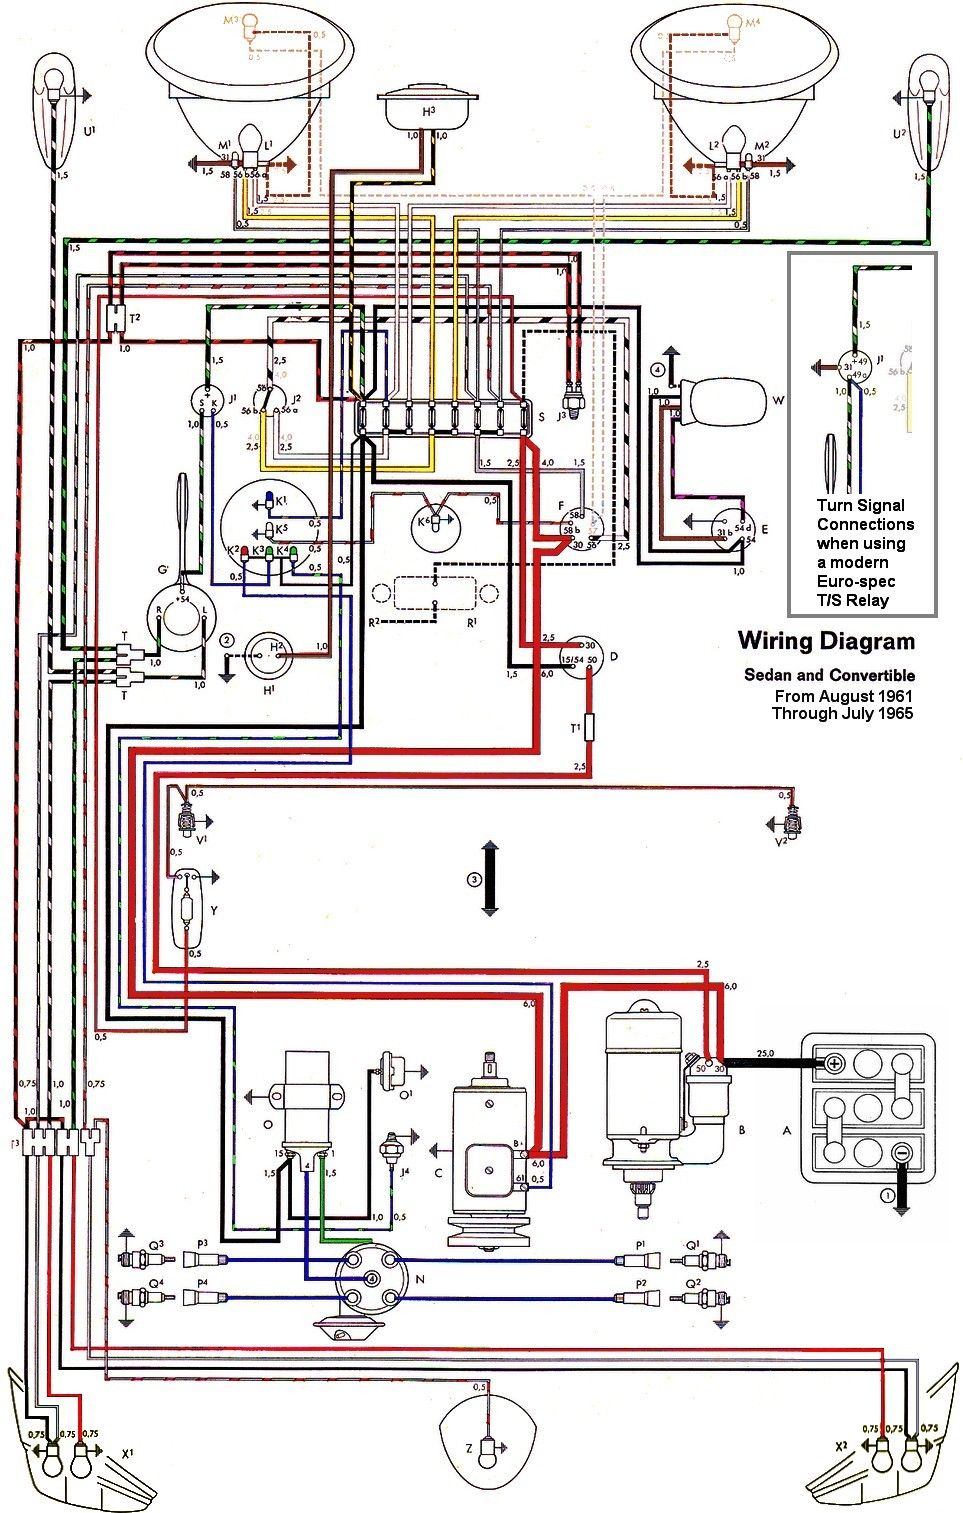 small resolution of wiring diagram vw beetle sedan and convertible 1961 1965